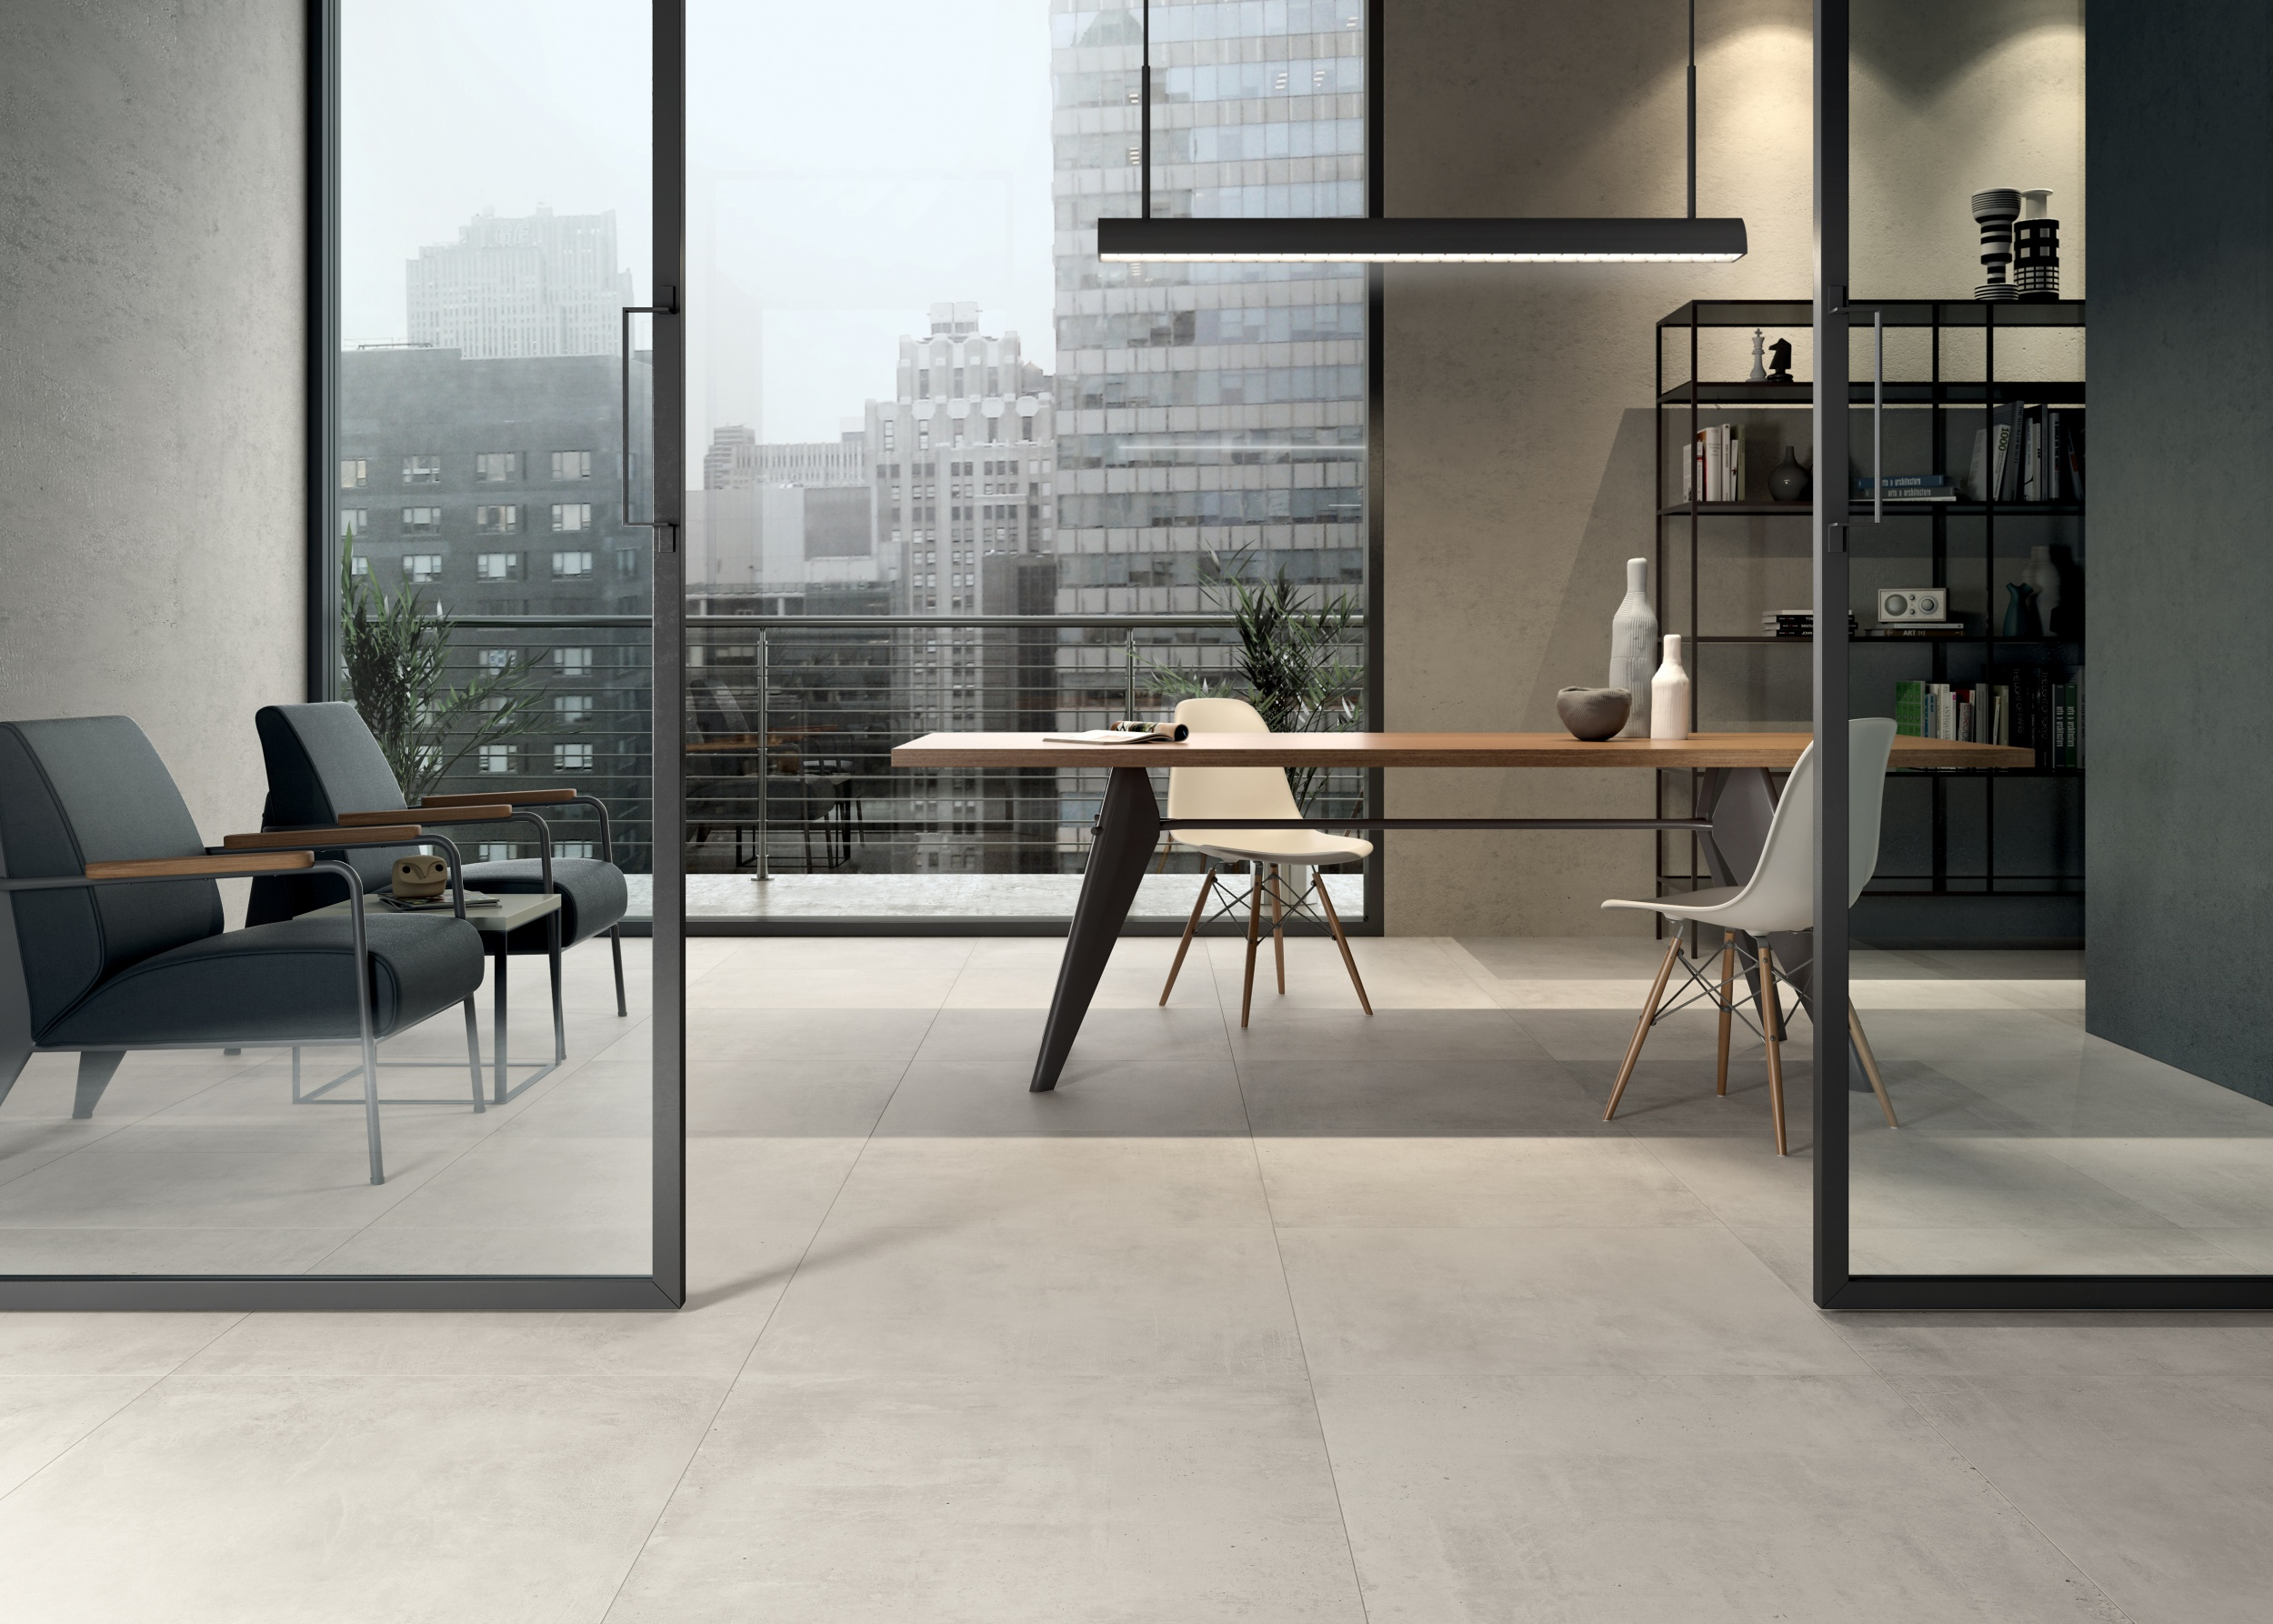 porcelain tile images: Urbe range high quality photo